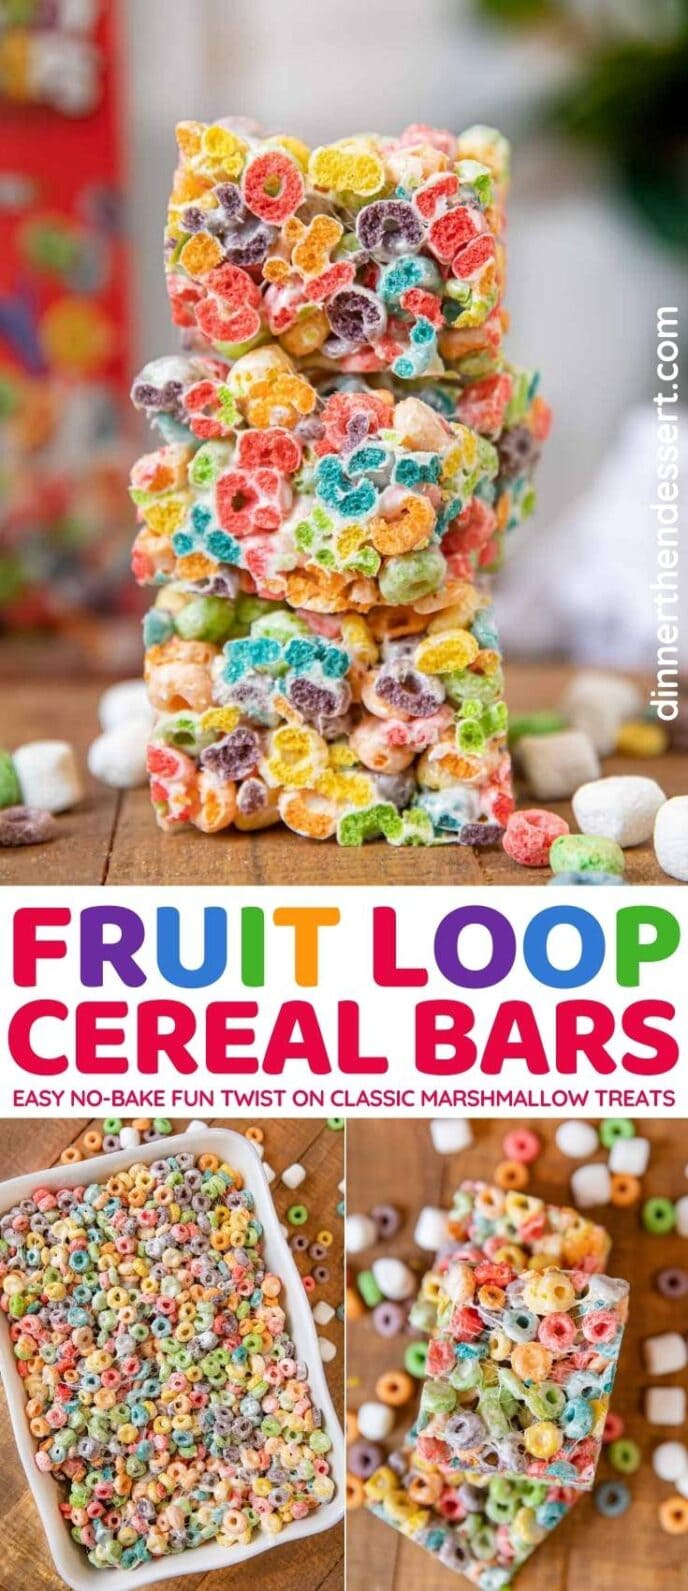 Fruit Loop Cereal Bars collage